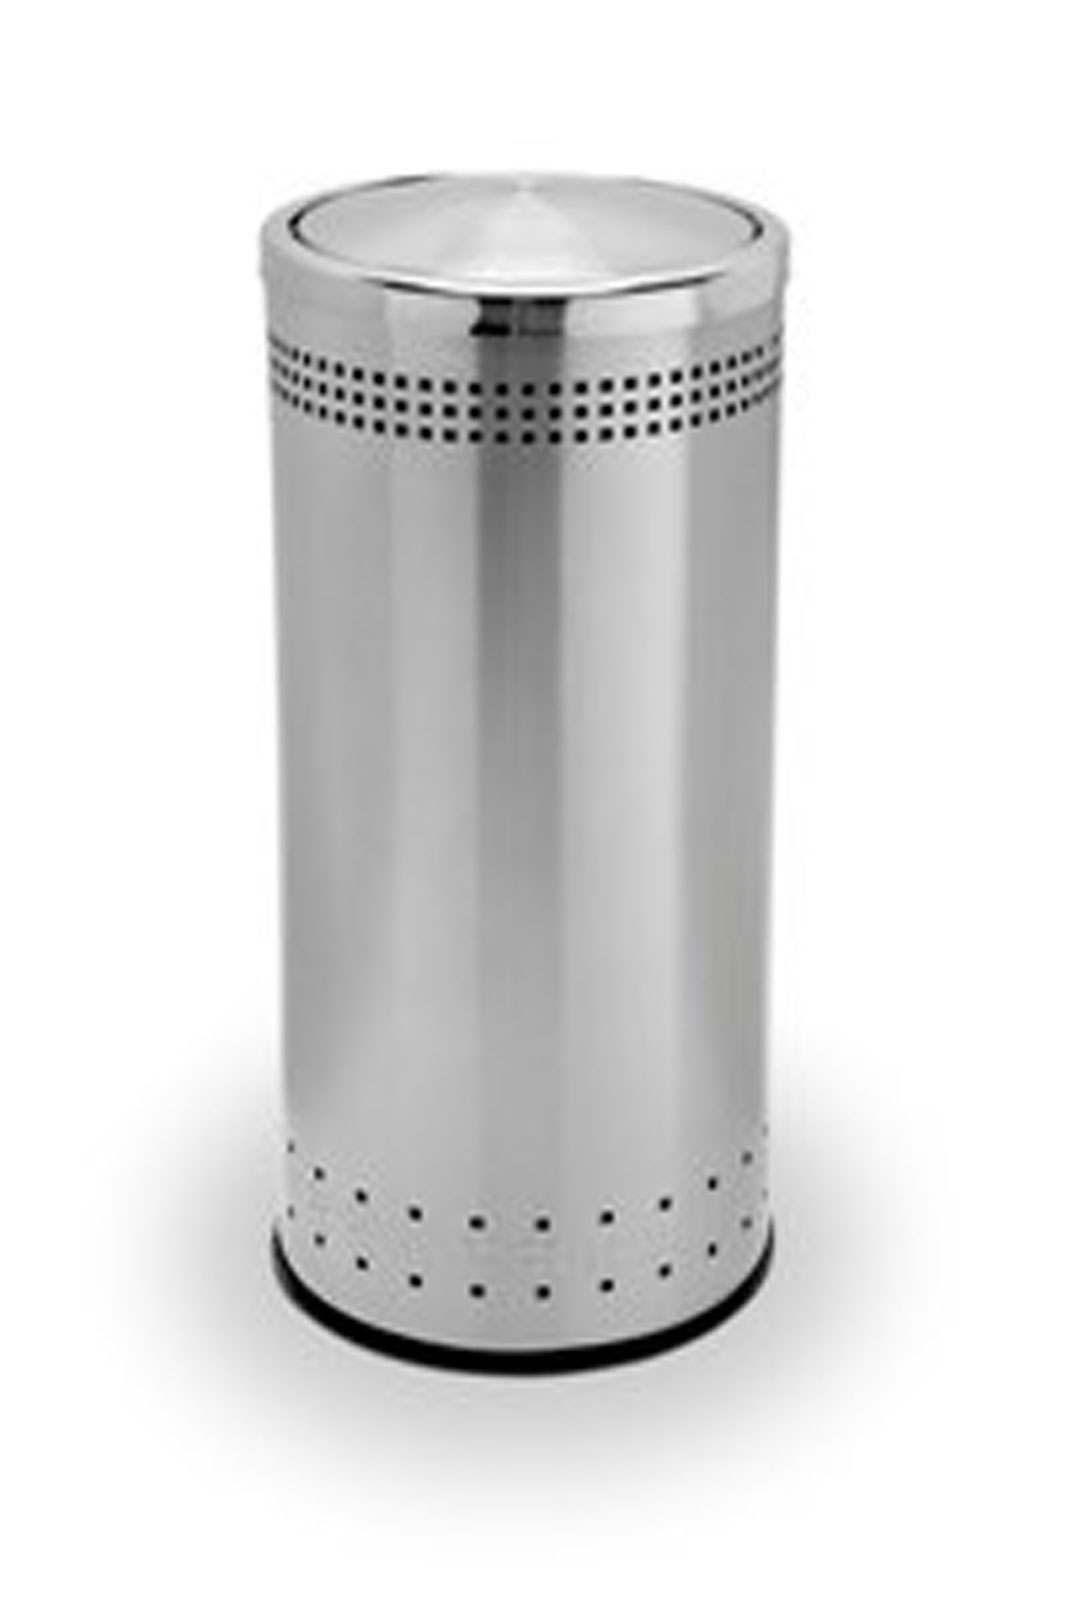 Stainless Steel Kitchen Trash Can Kitchen Ideas